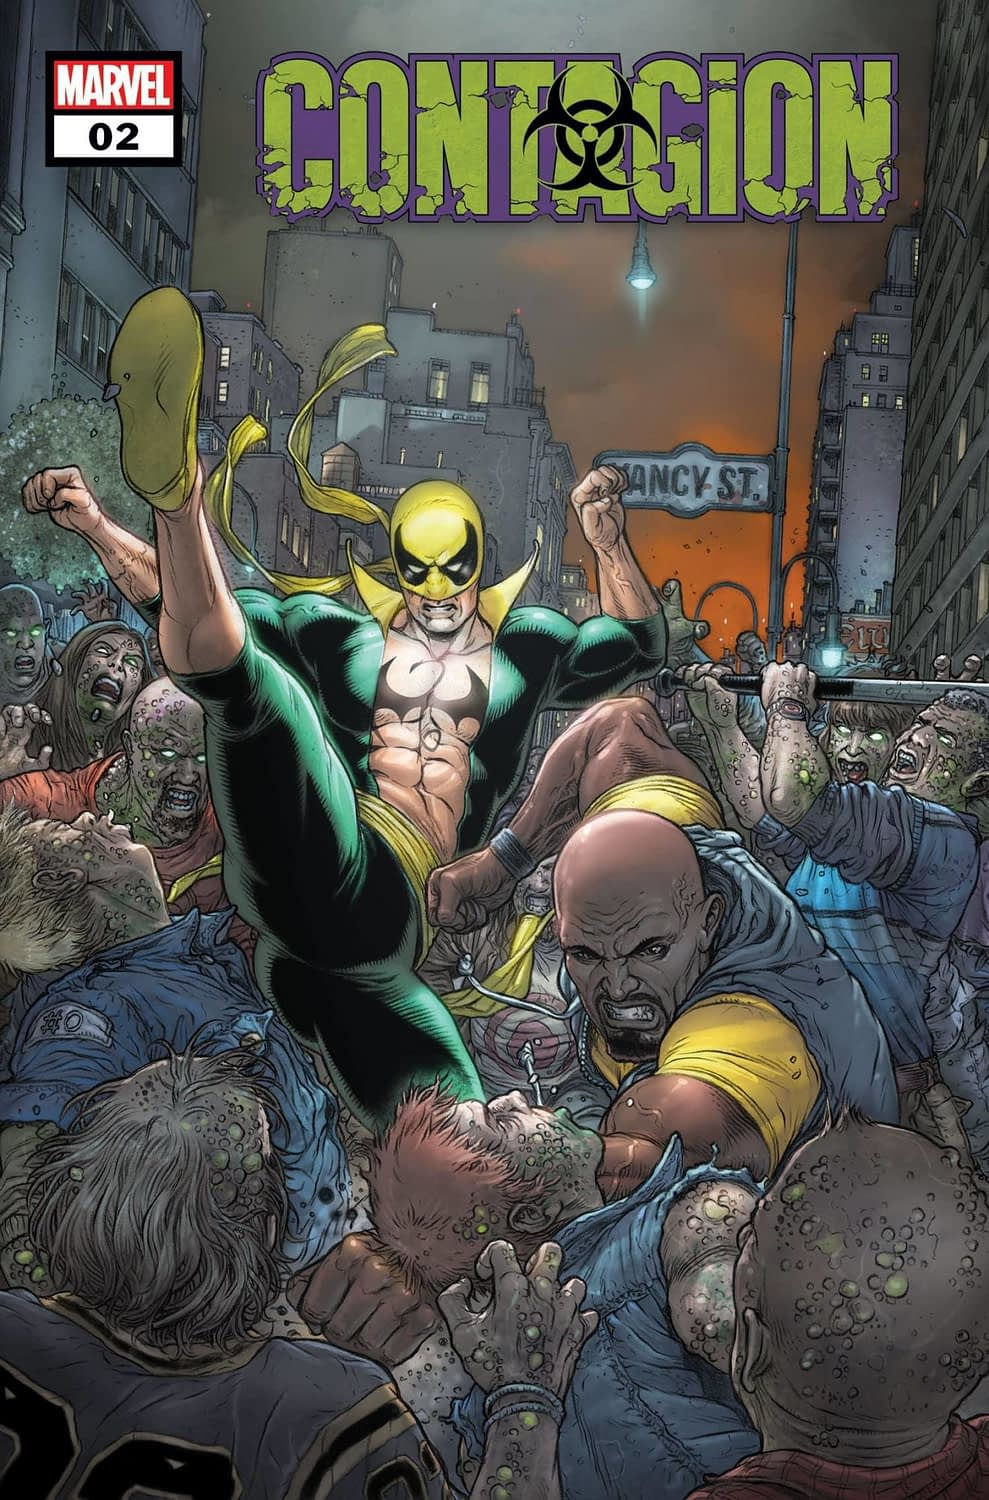 Ed Brisson Pits Street Level Marvel Heroes Against Zombie Hordes in Contagion